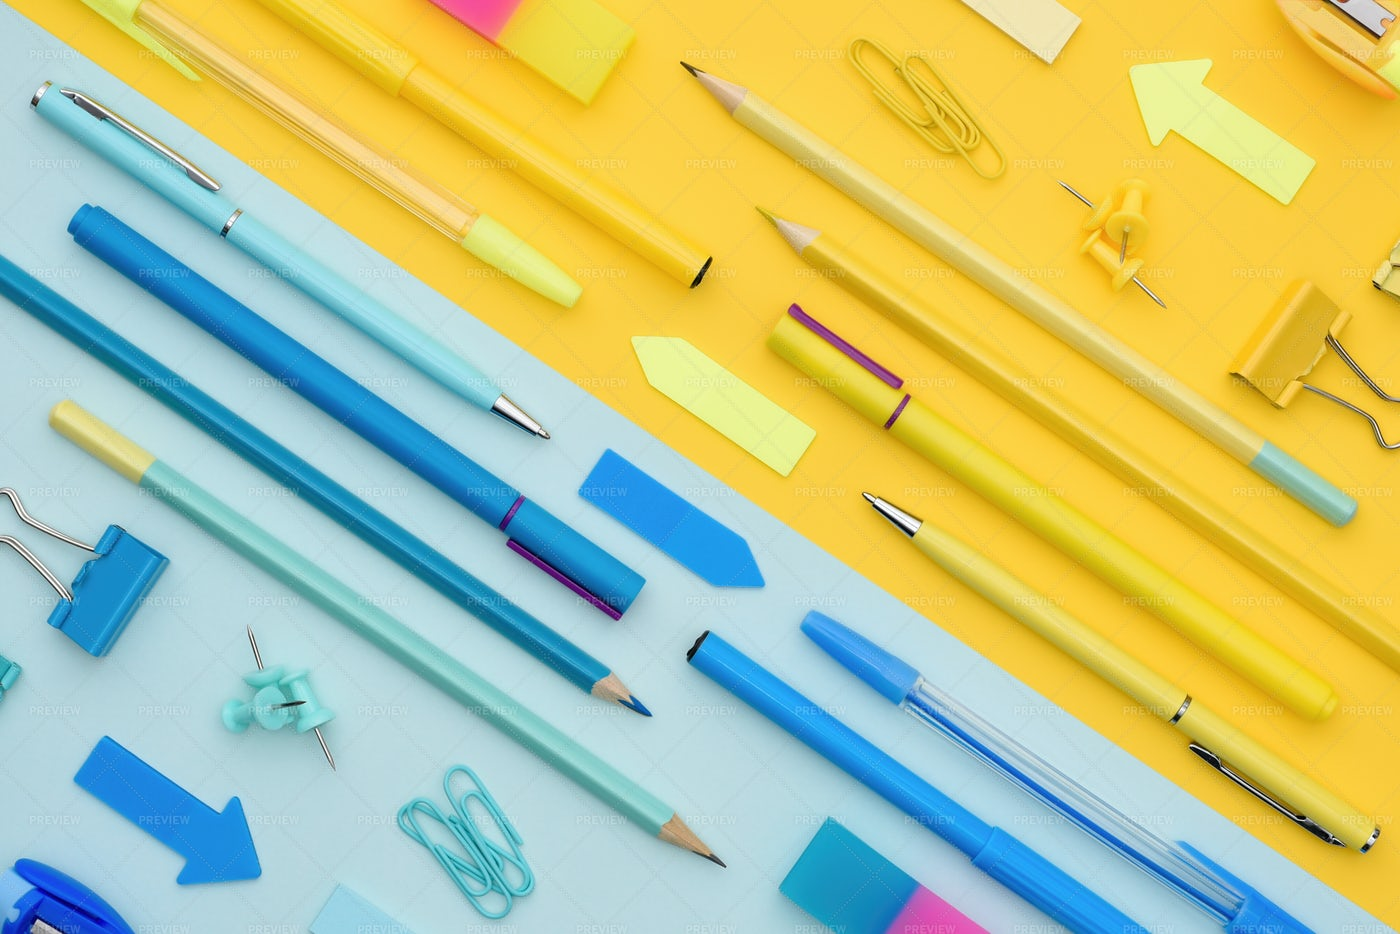 School And Office Items: Stock Photos